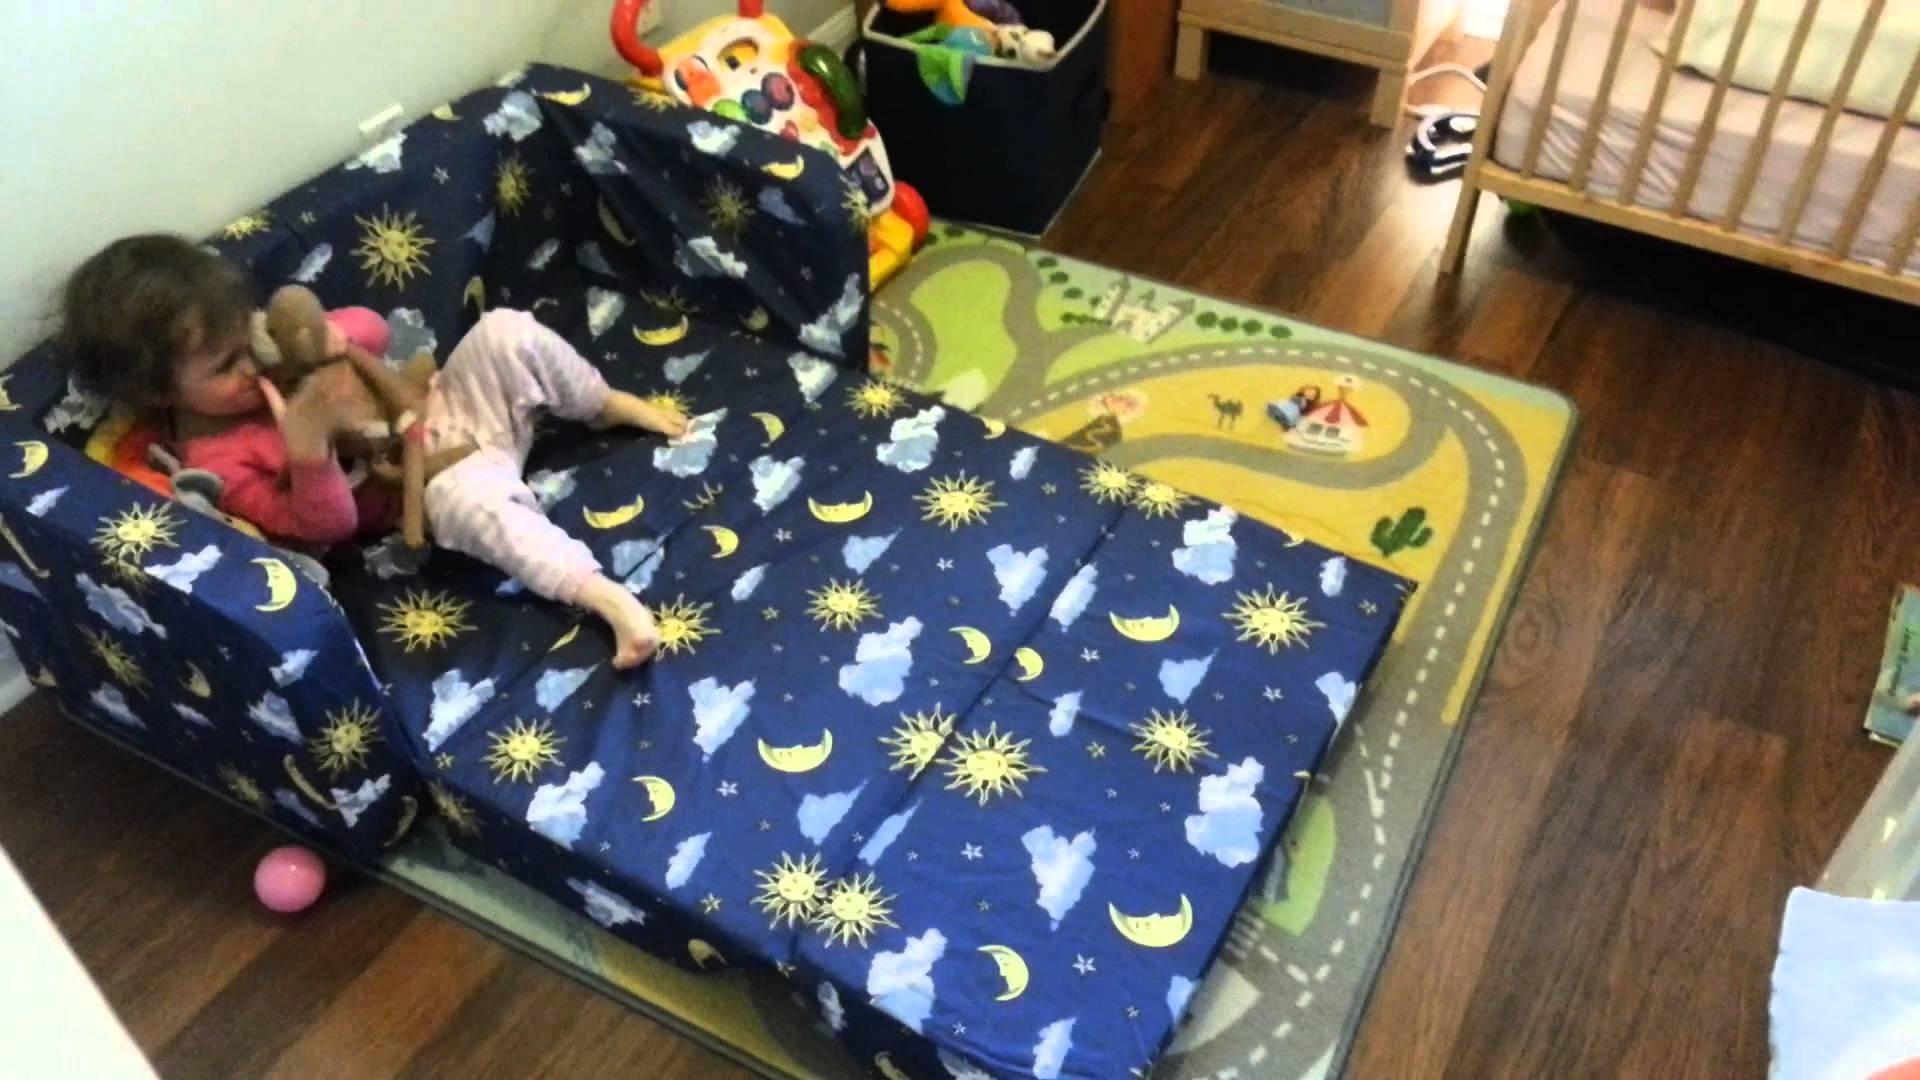 Eloise New Toddler Flip Sofa Pt2 – Youtube Throughout Flip Open Sofas For Toddlers (View 7 of 20)